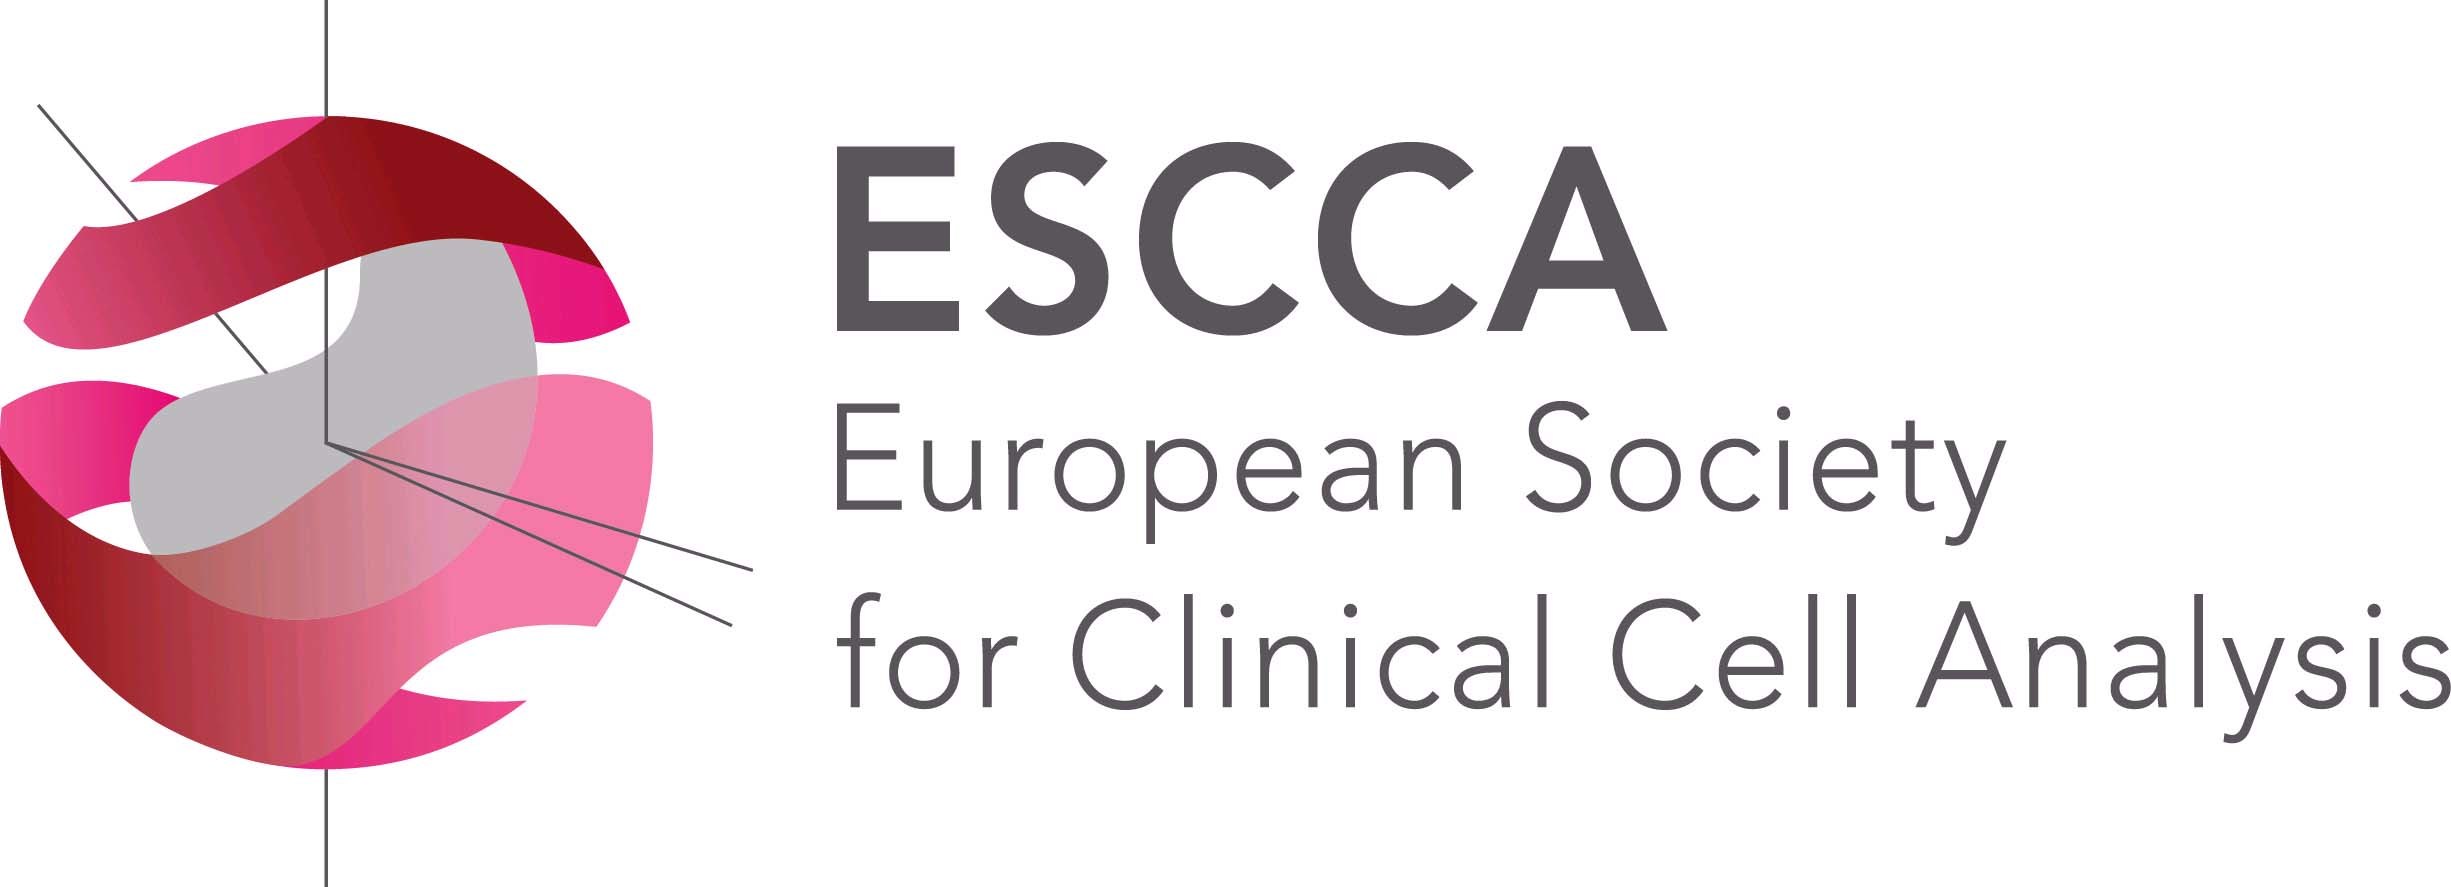 European Society for Clinical Cell Analysis - ESCCA